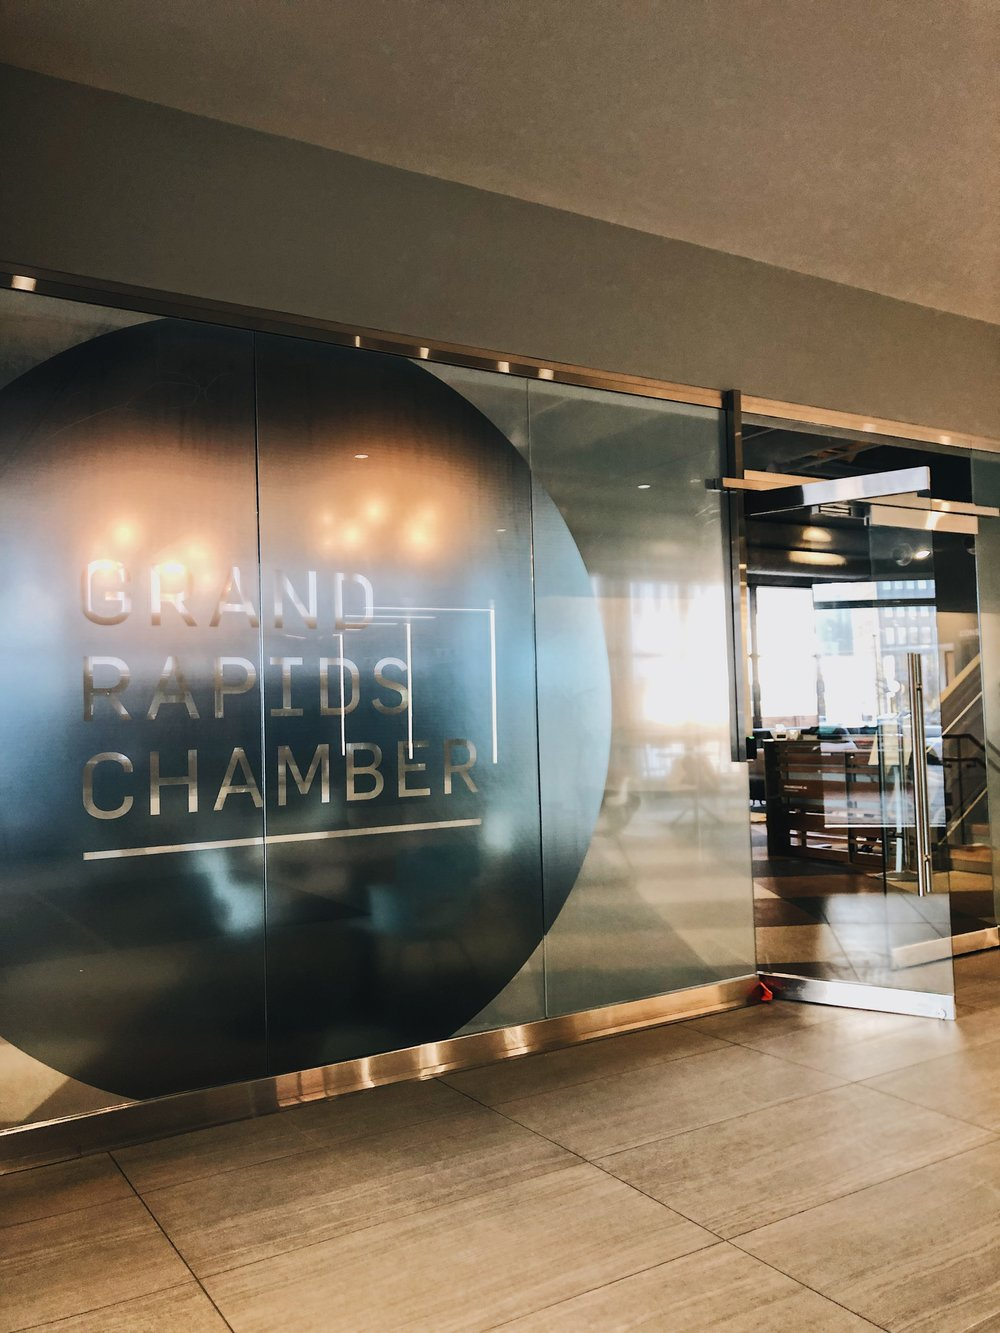 Welcome to the Grand Rapids Chamber of Commerce.